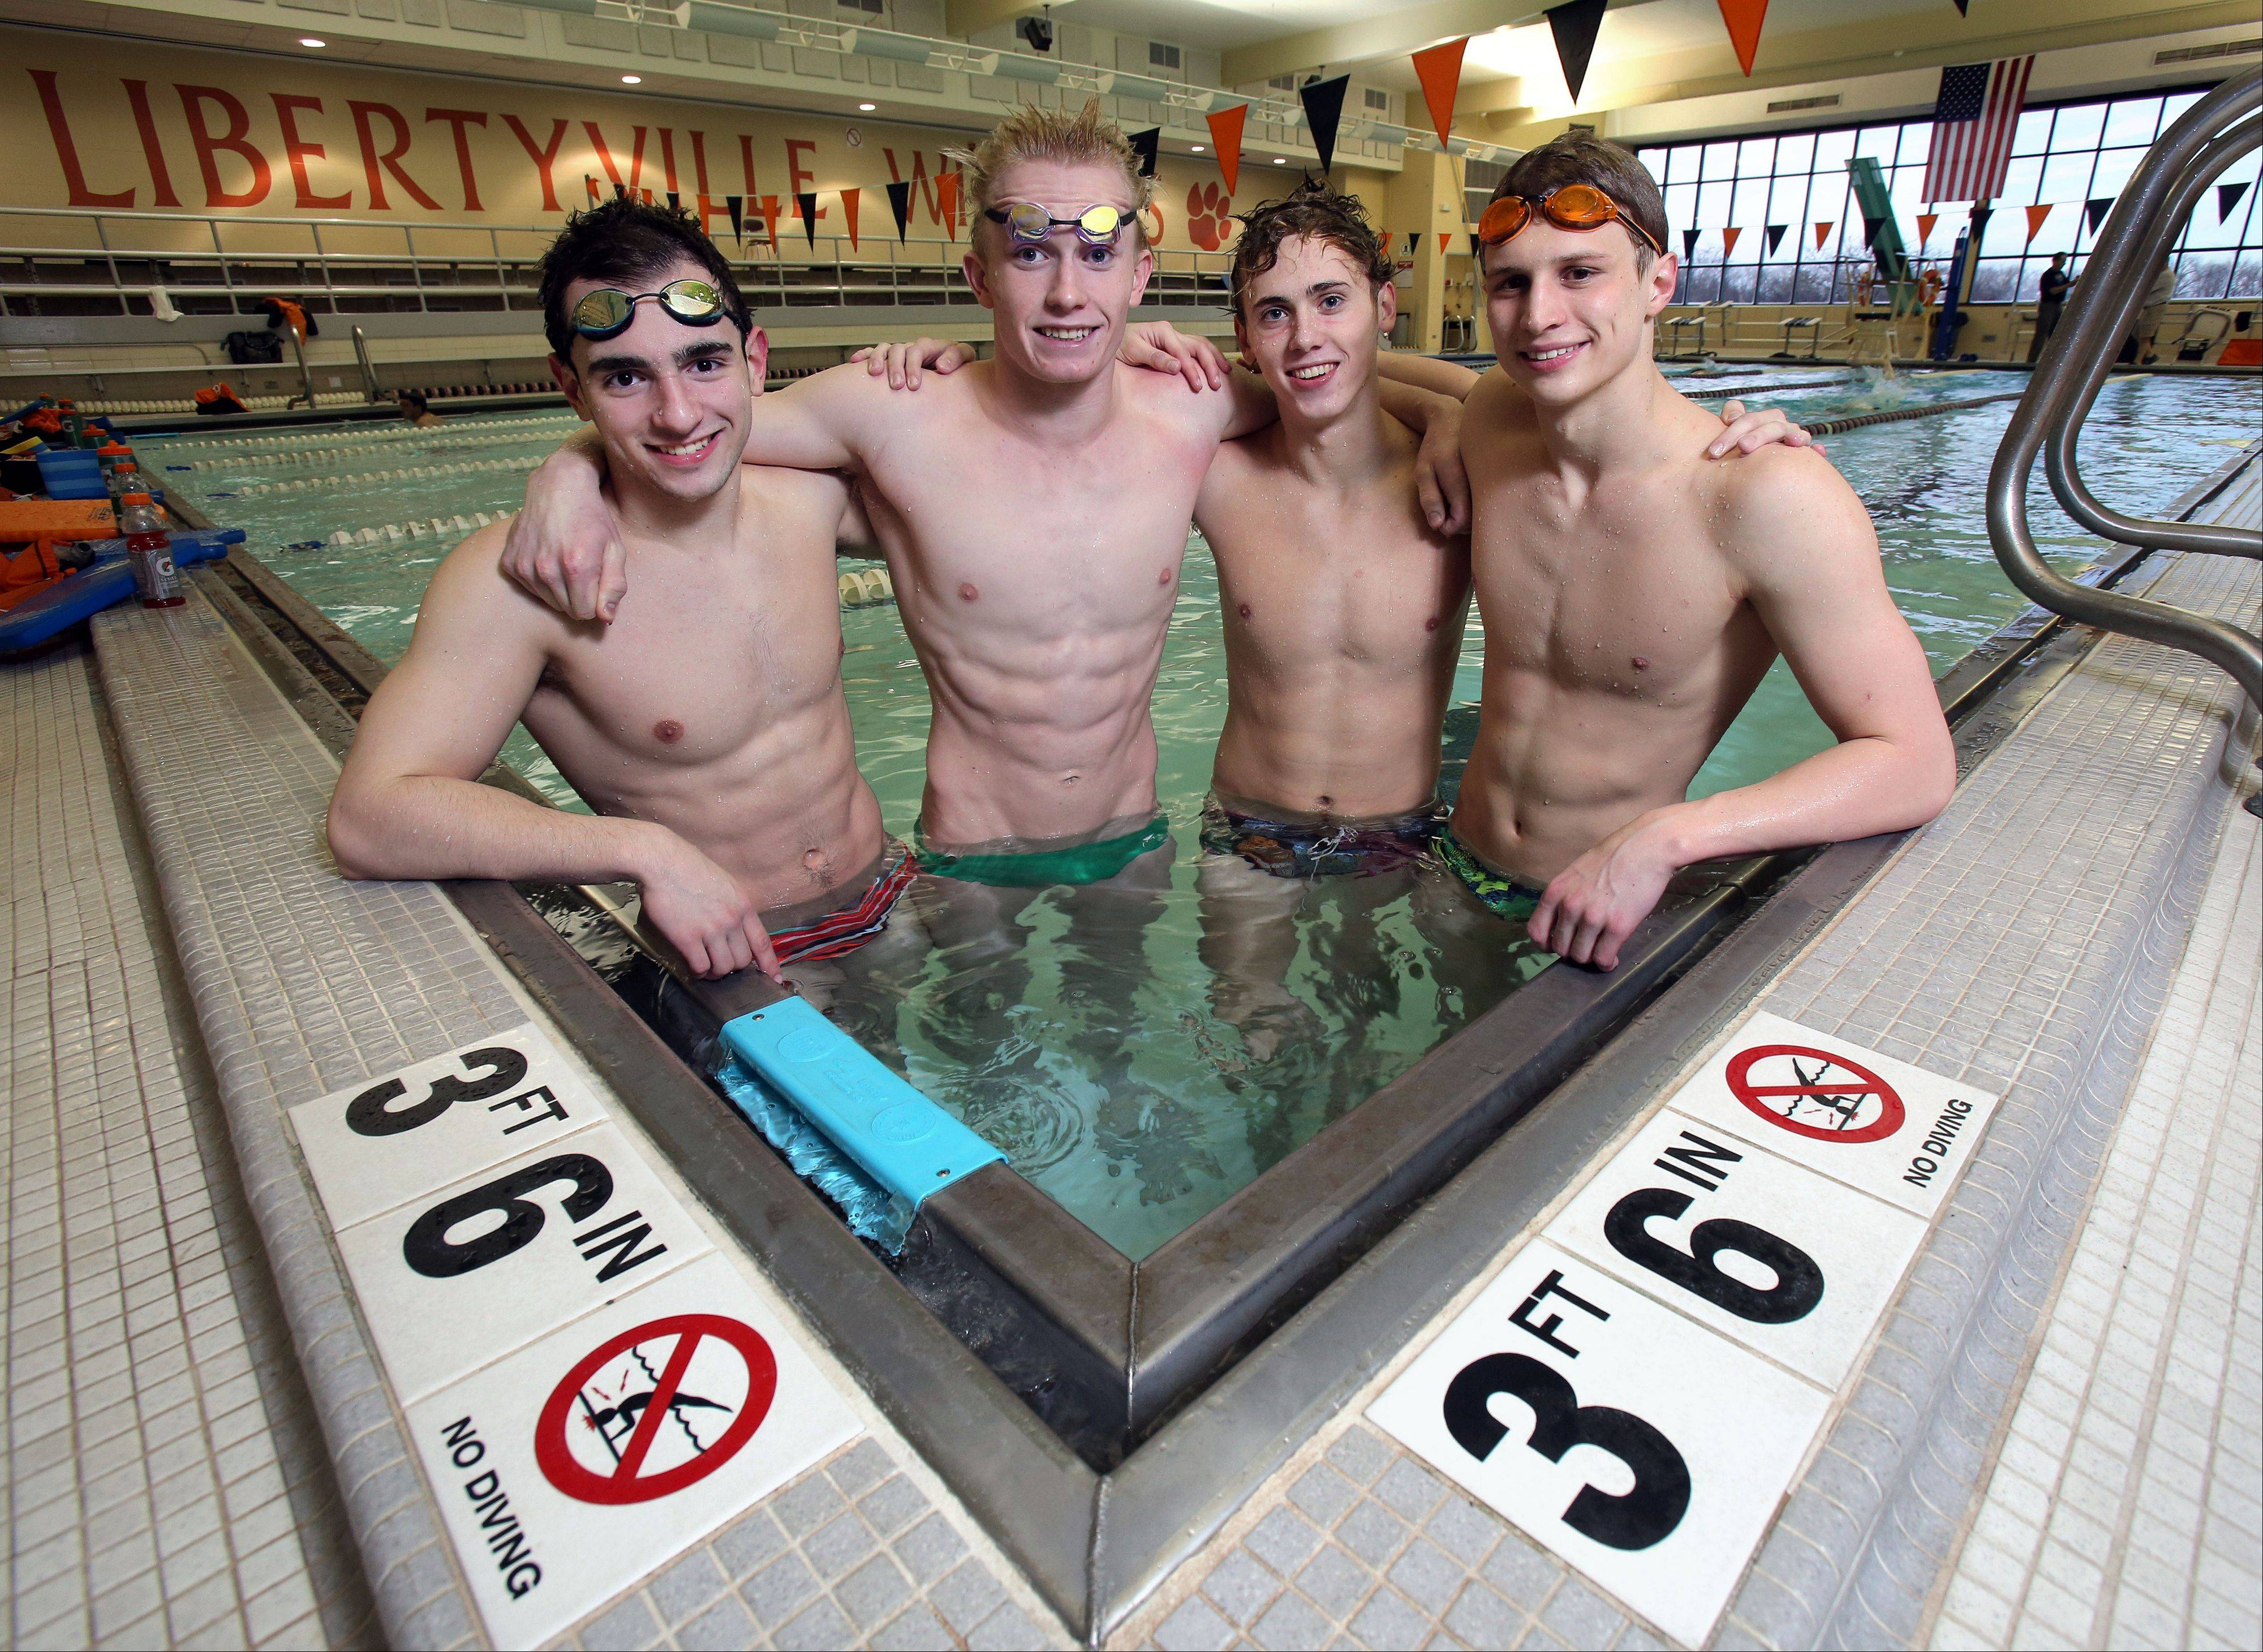 Libertyville swimmers, from left, Matt Harrington, Bobby Snader, Atticus Rush, and Alex Snarski, set pool records at Libertyville in the 200 medley, 200 freestyle and 400 freestyle relays last week. They're after bigger goals in the coming weeks, including a top-three finish in the state meet.